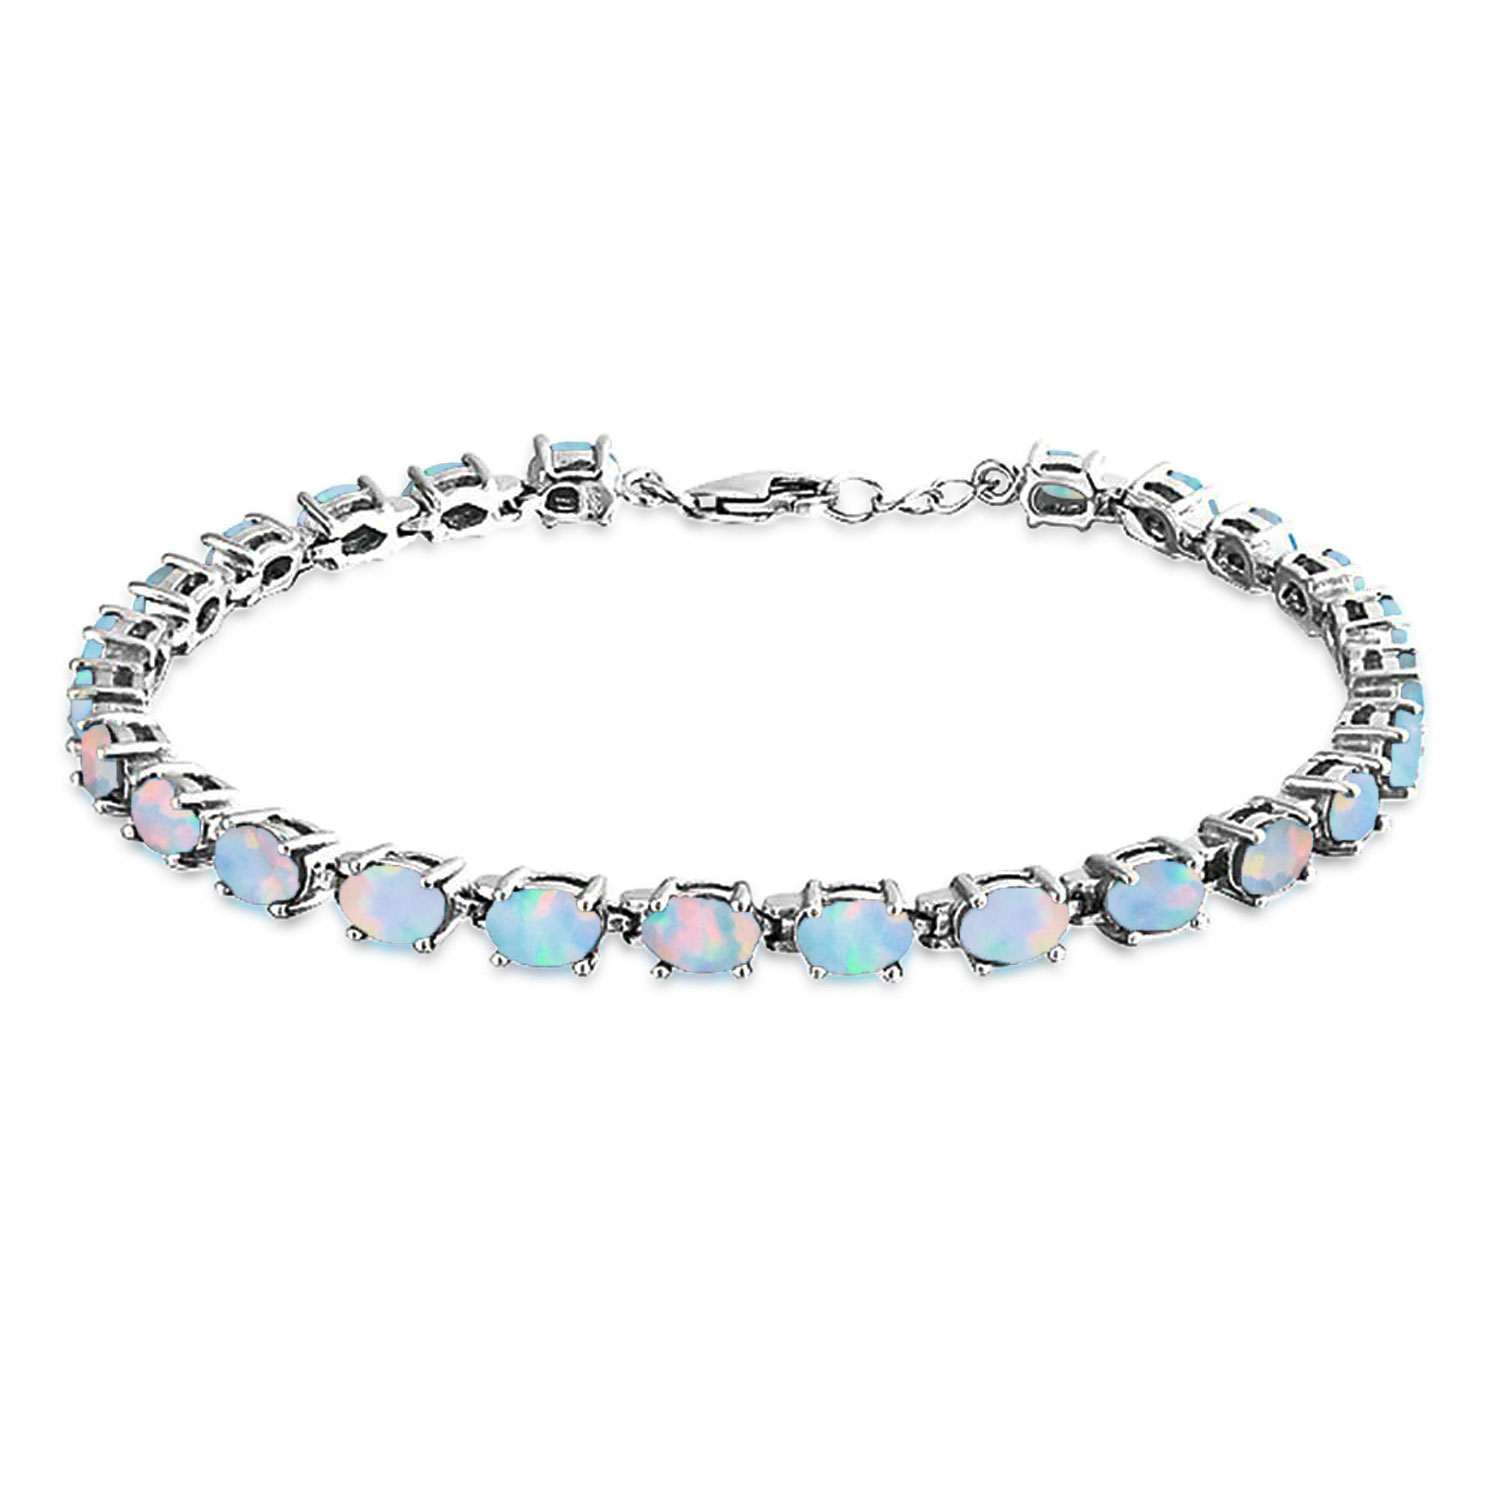 Bling Jewelry 925 Silver Synthetic White Opal Oval Tennis Bracelet 7.5in by Bling Jewelry